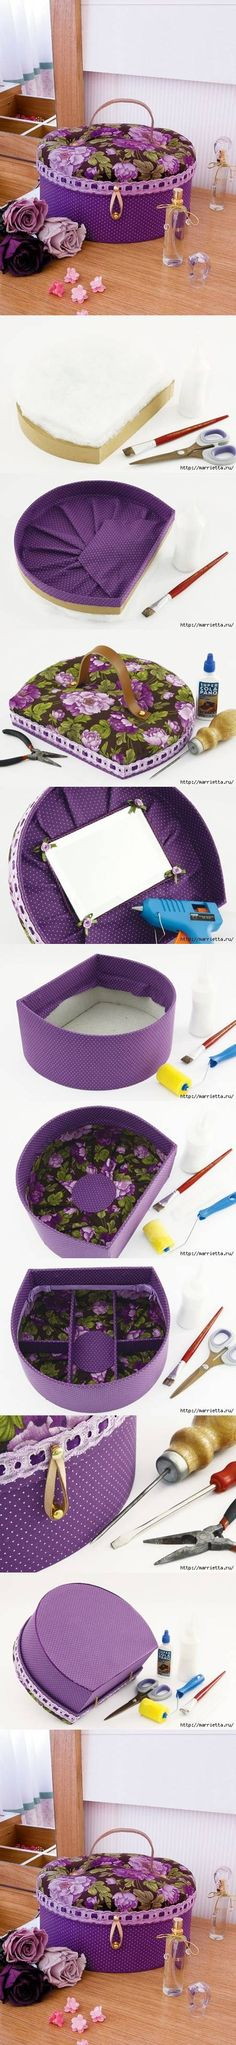 DIY Cute Makeup Box DIY Projects